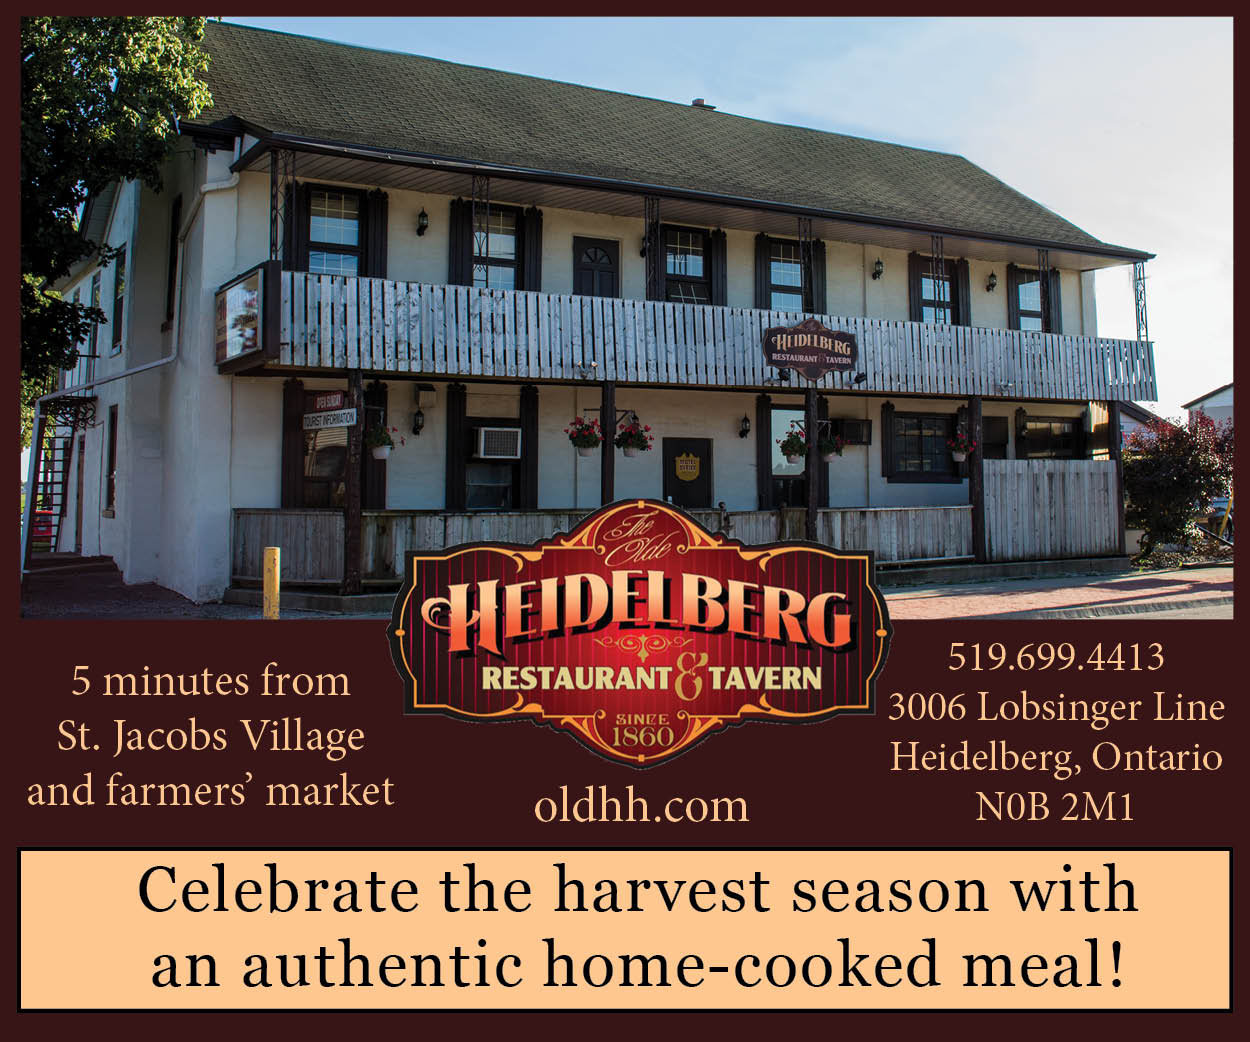 Heidelberg Restaurant, Tavern & Motel – September 2018